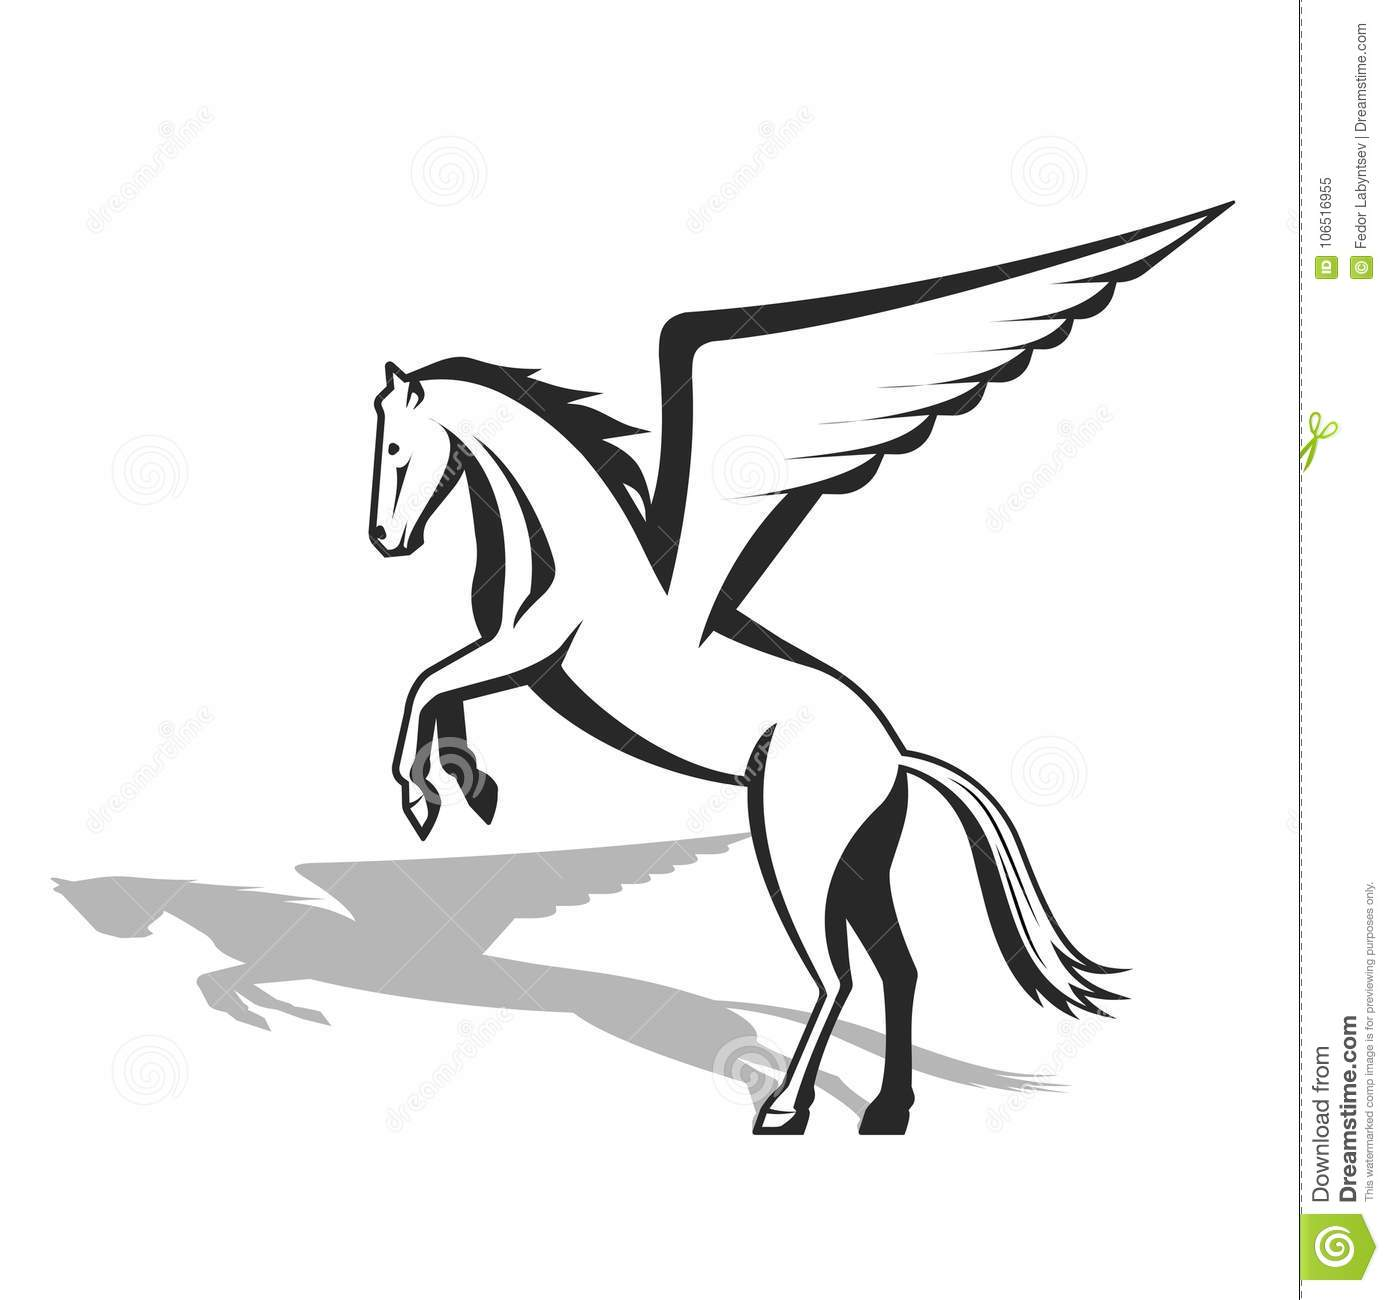 Pegasus A Mythological Being A Horse With Wings Stock Vector Illustration Of Community Black 106516955